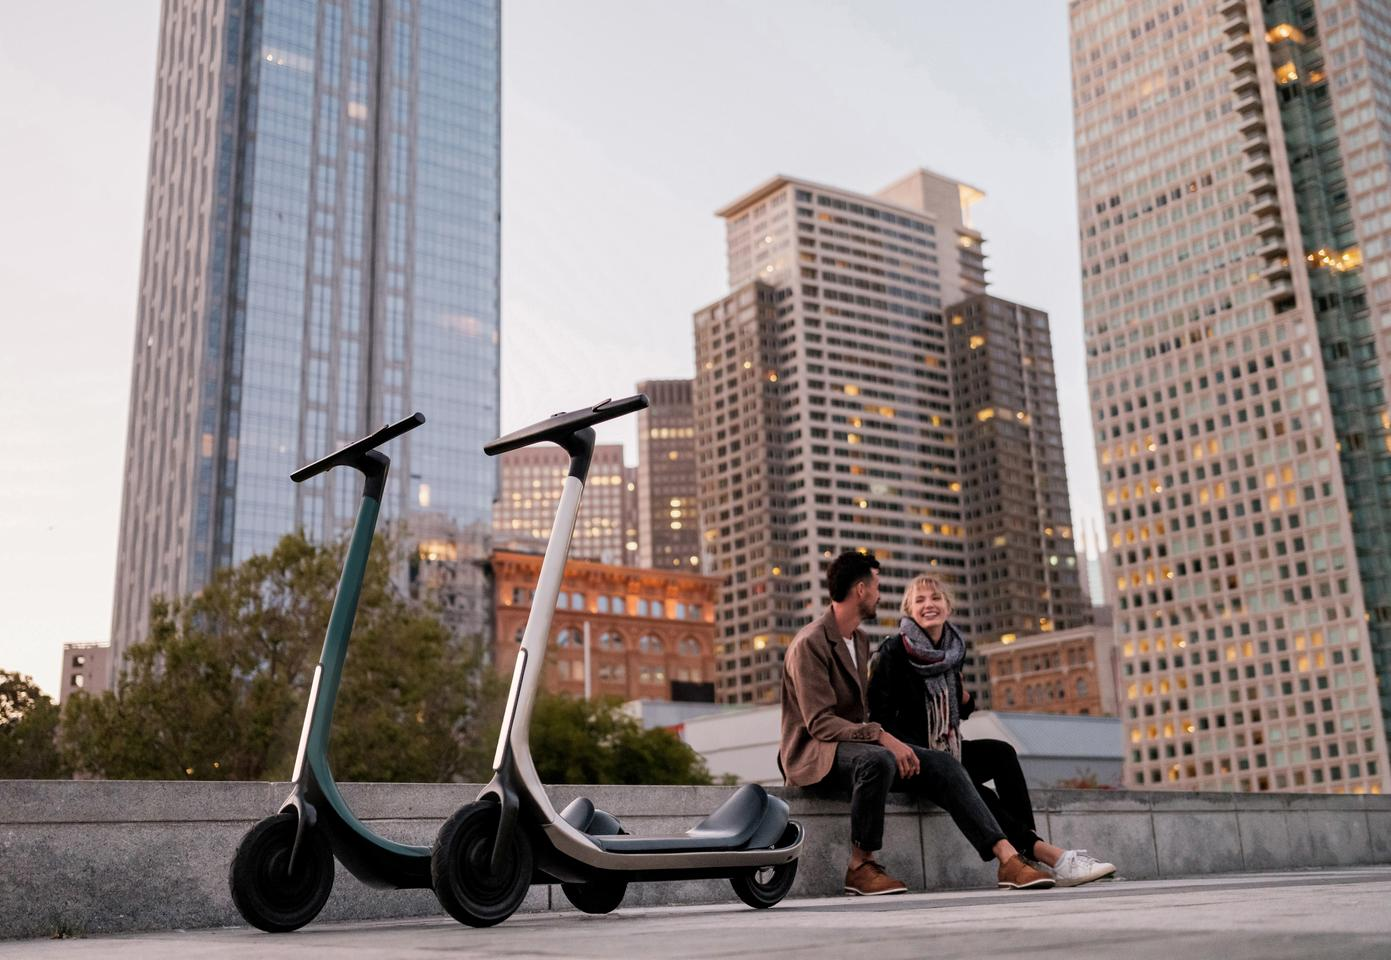 The Scotsman e-scooter is available in three model variants, with the top ride offering a top speed of up to 45 mph and per-charge range of 70 miles